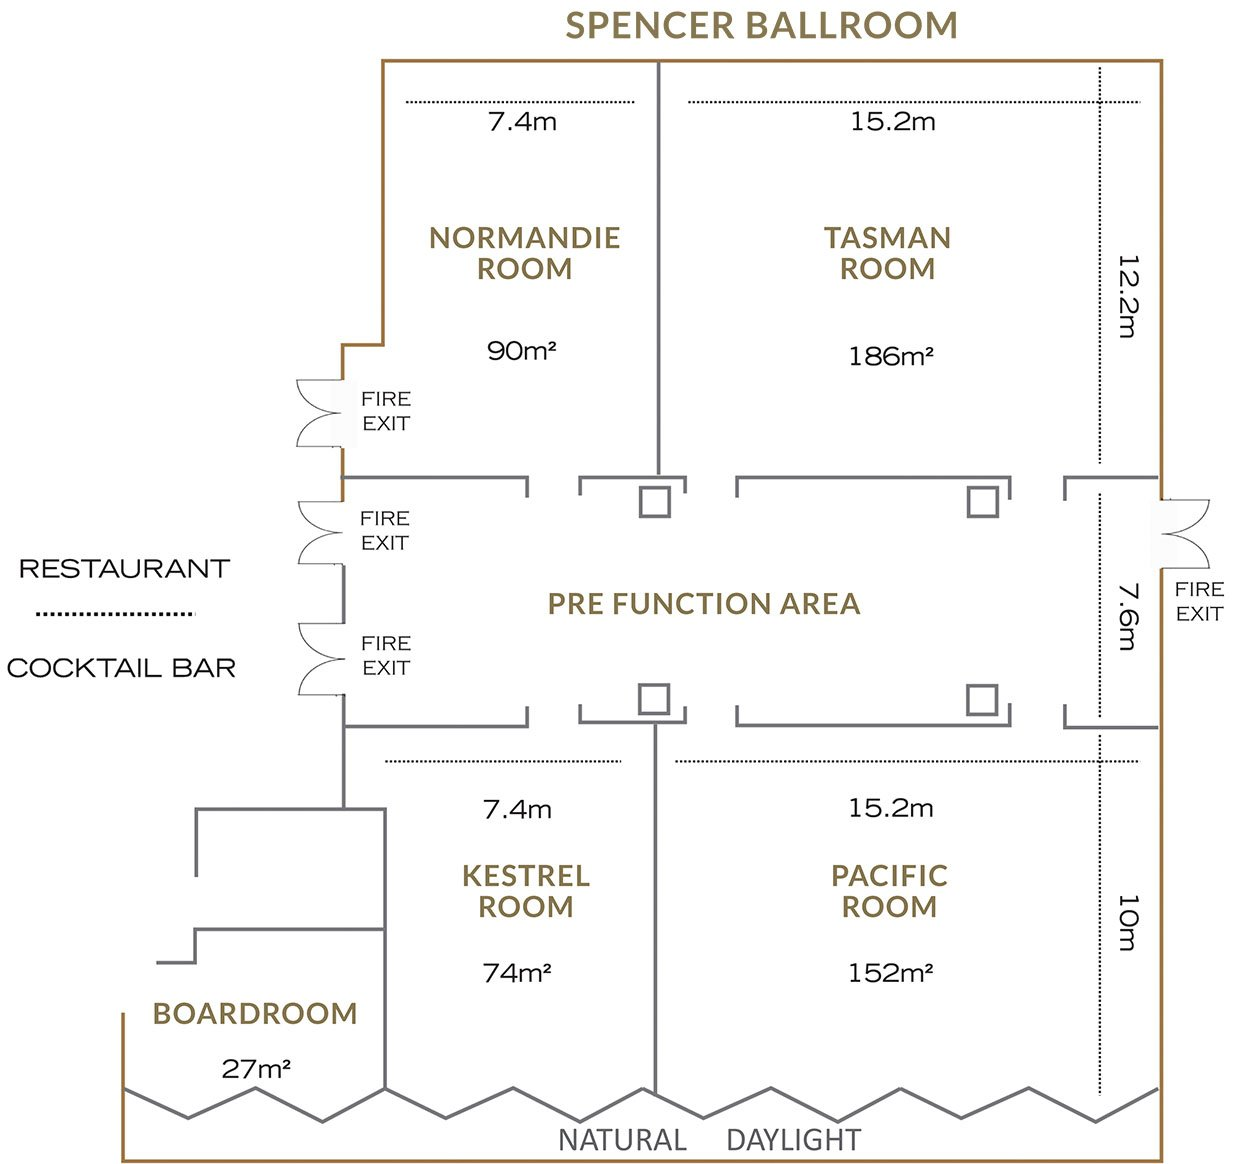 Spencer Hotel Event Spaces Floor Plan